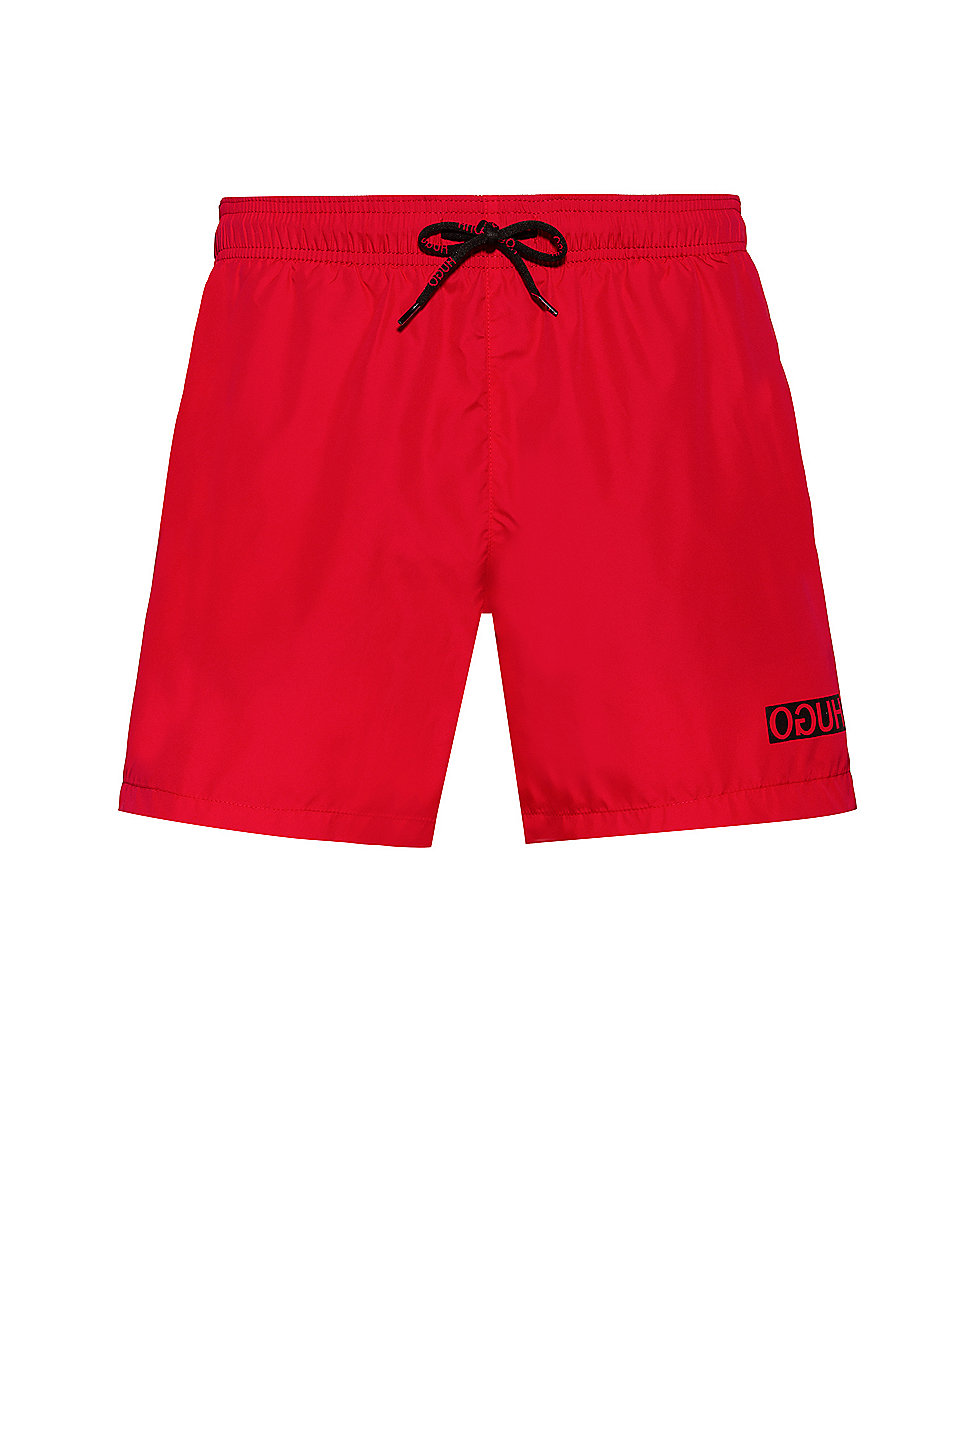 Hugo by Hugo Boss Mens Trunks